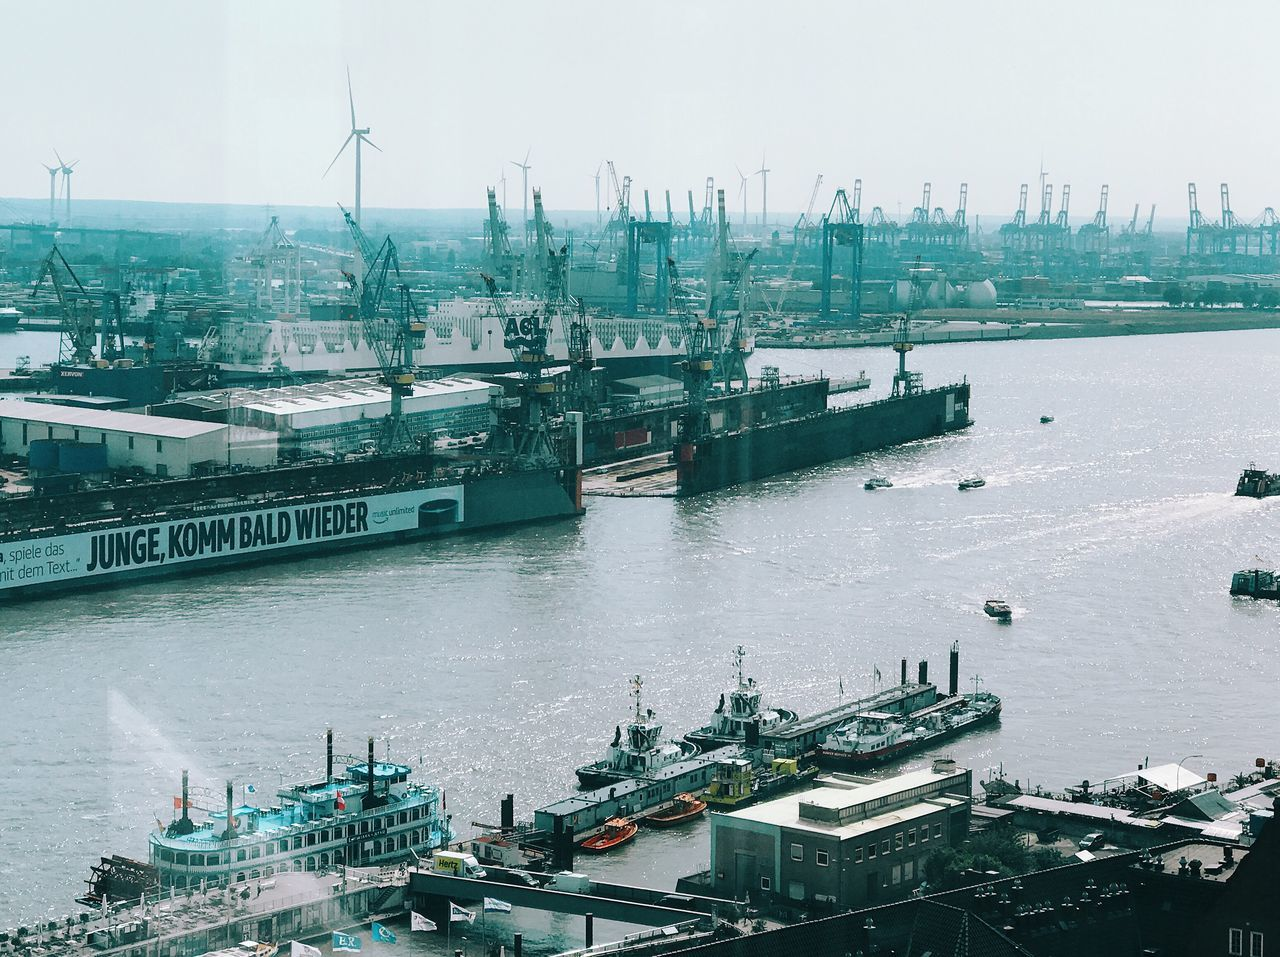 Nautical Vessel Freight Transportation Transportation Mode Of Transport Shipping  Harbor Container Ship Cargo Container High Angle View Ship Commercial Dock Crane - Construction Machinery Industry Water Sea Industrial Ship Moored Day Outdoors Building Exterior